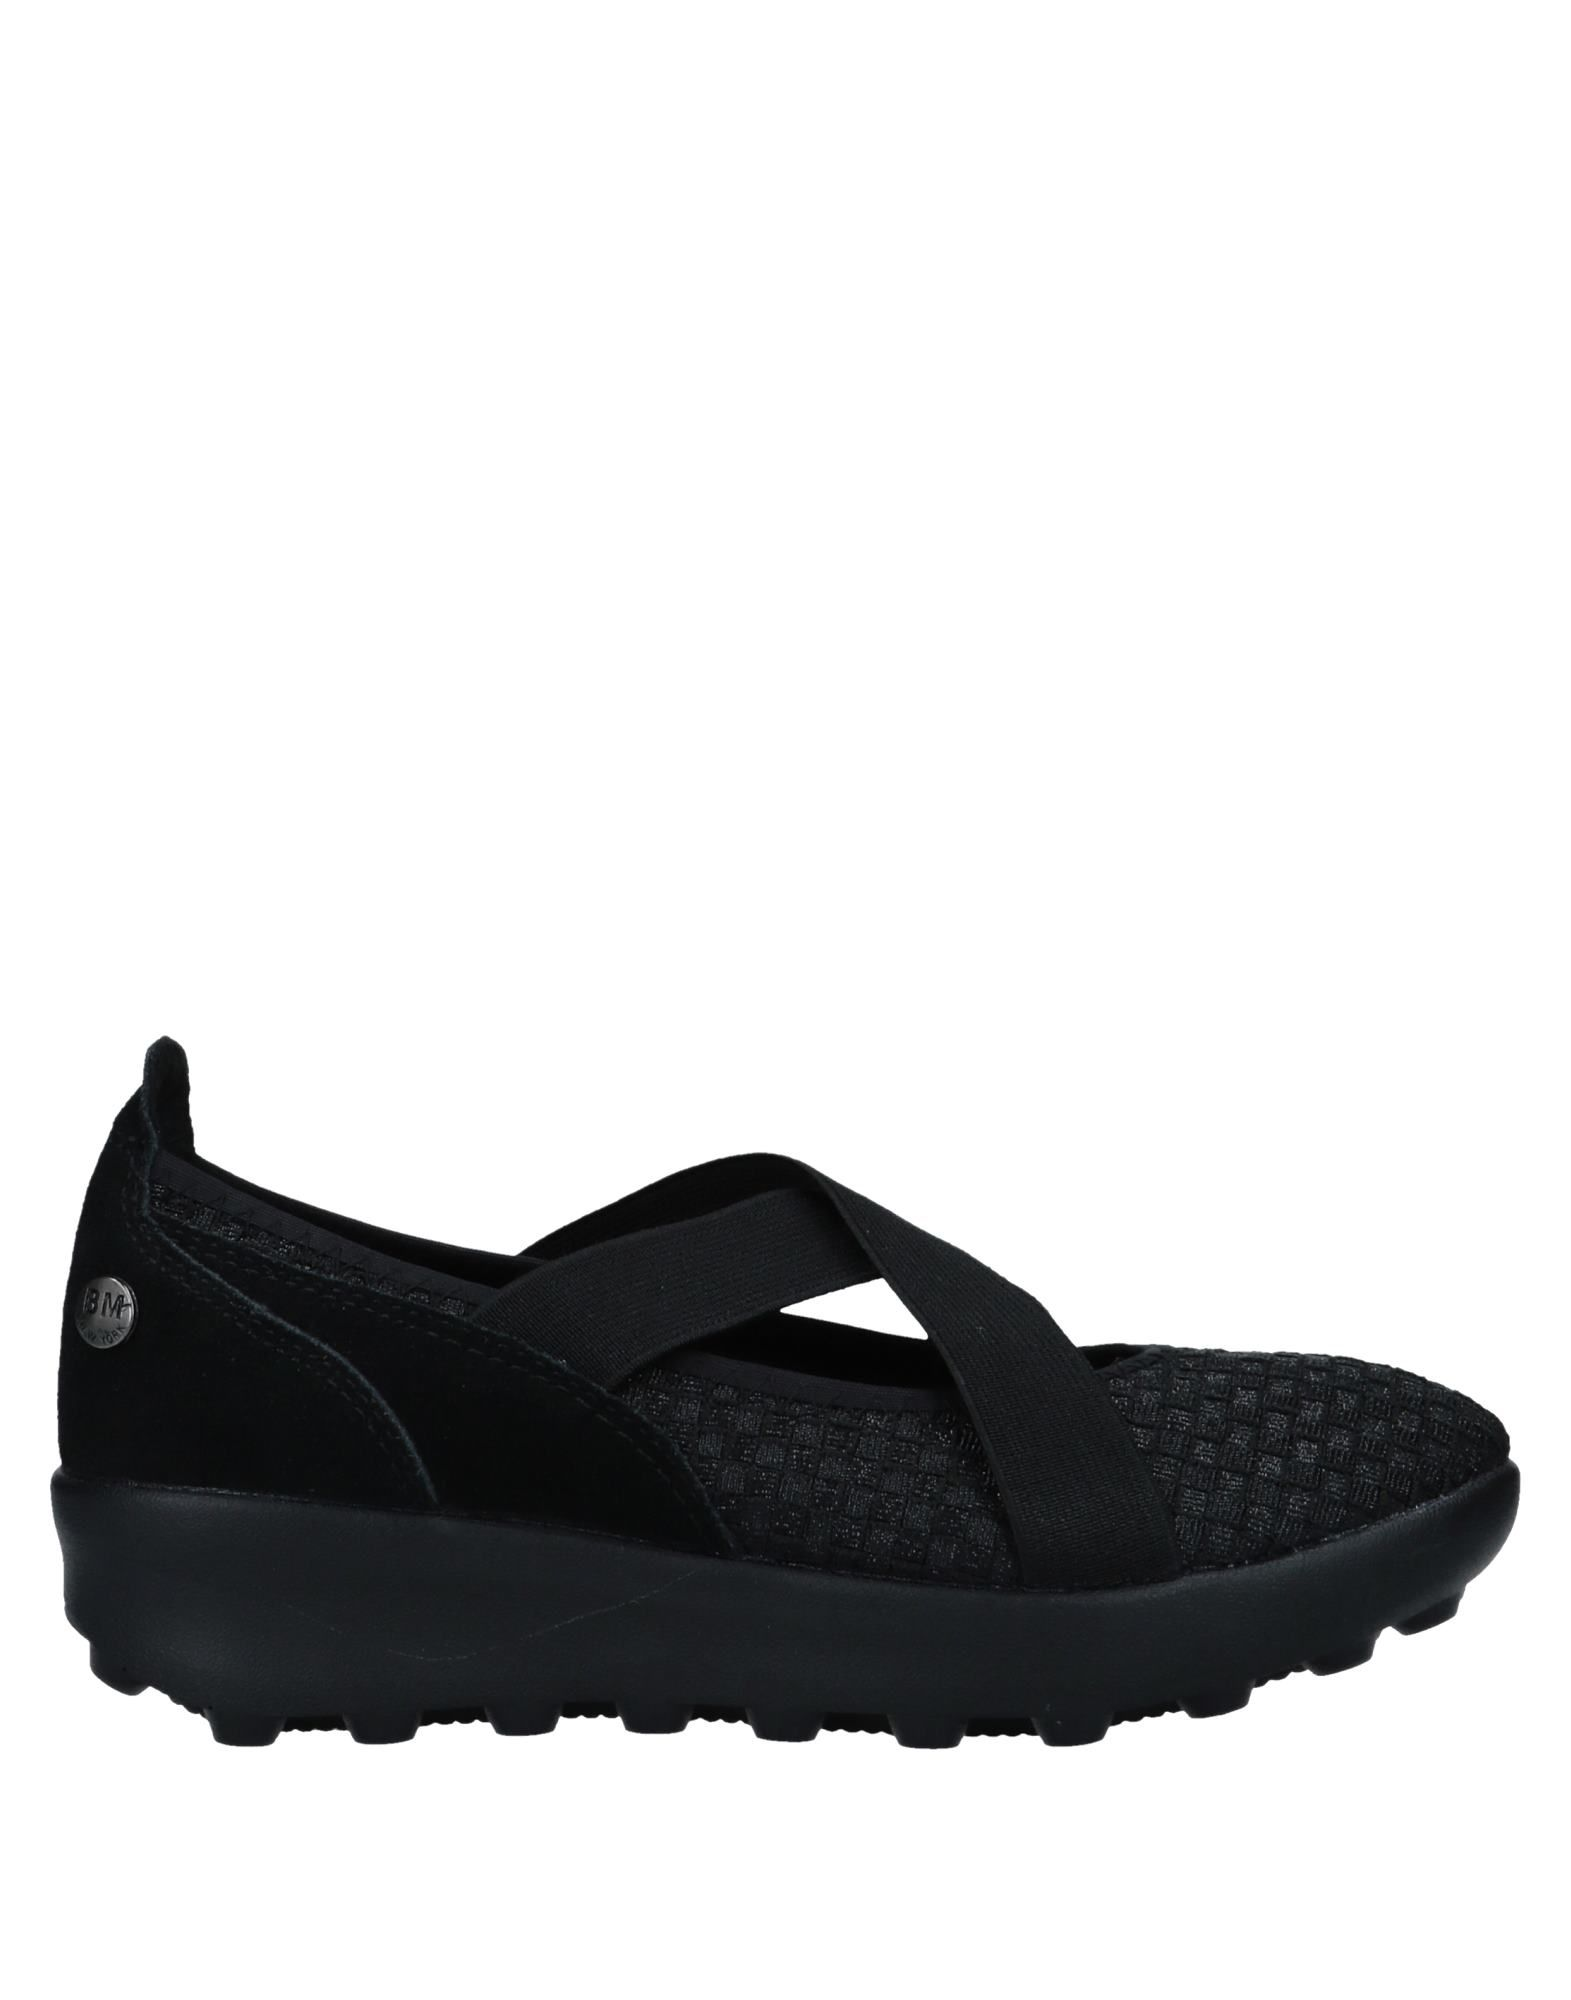 BERNIE MEV. Pumps. plain weave, lamé, suede effect, logo, solid color, elasticized gores, round toeline, wedge heel, rubber wedge, leather lining, rubber cleated sole, contains non-textile parts of animal origin. Soft Leather, Textile fibers